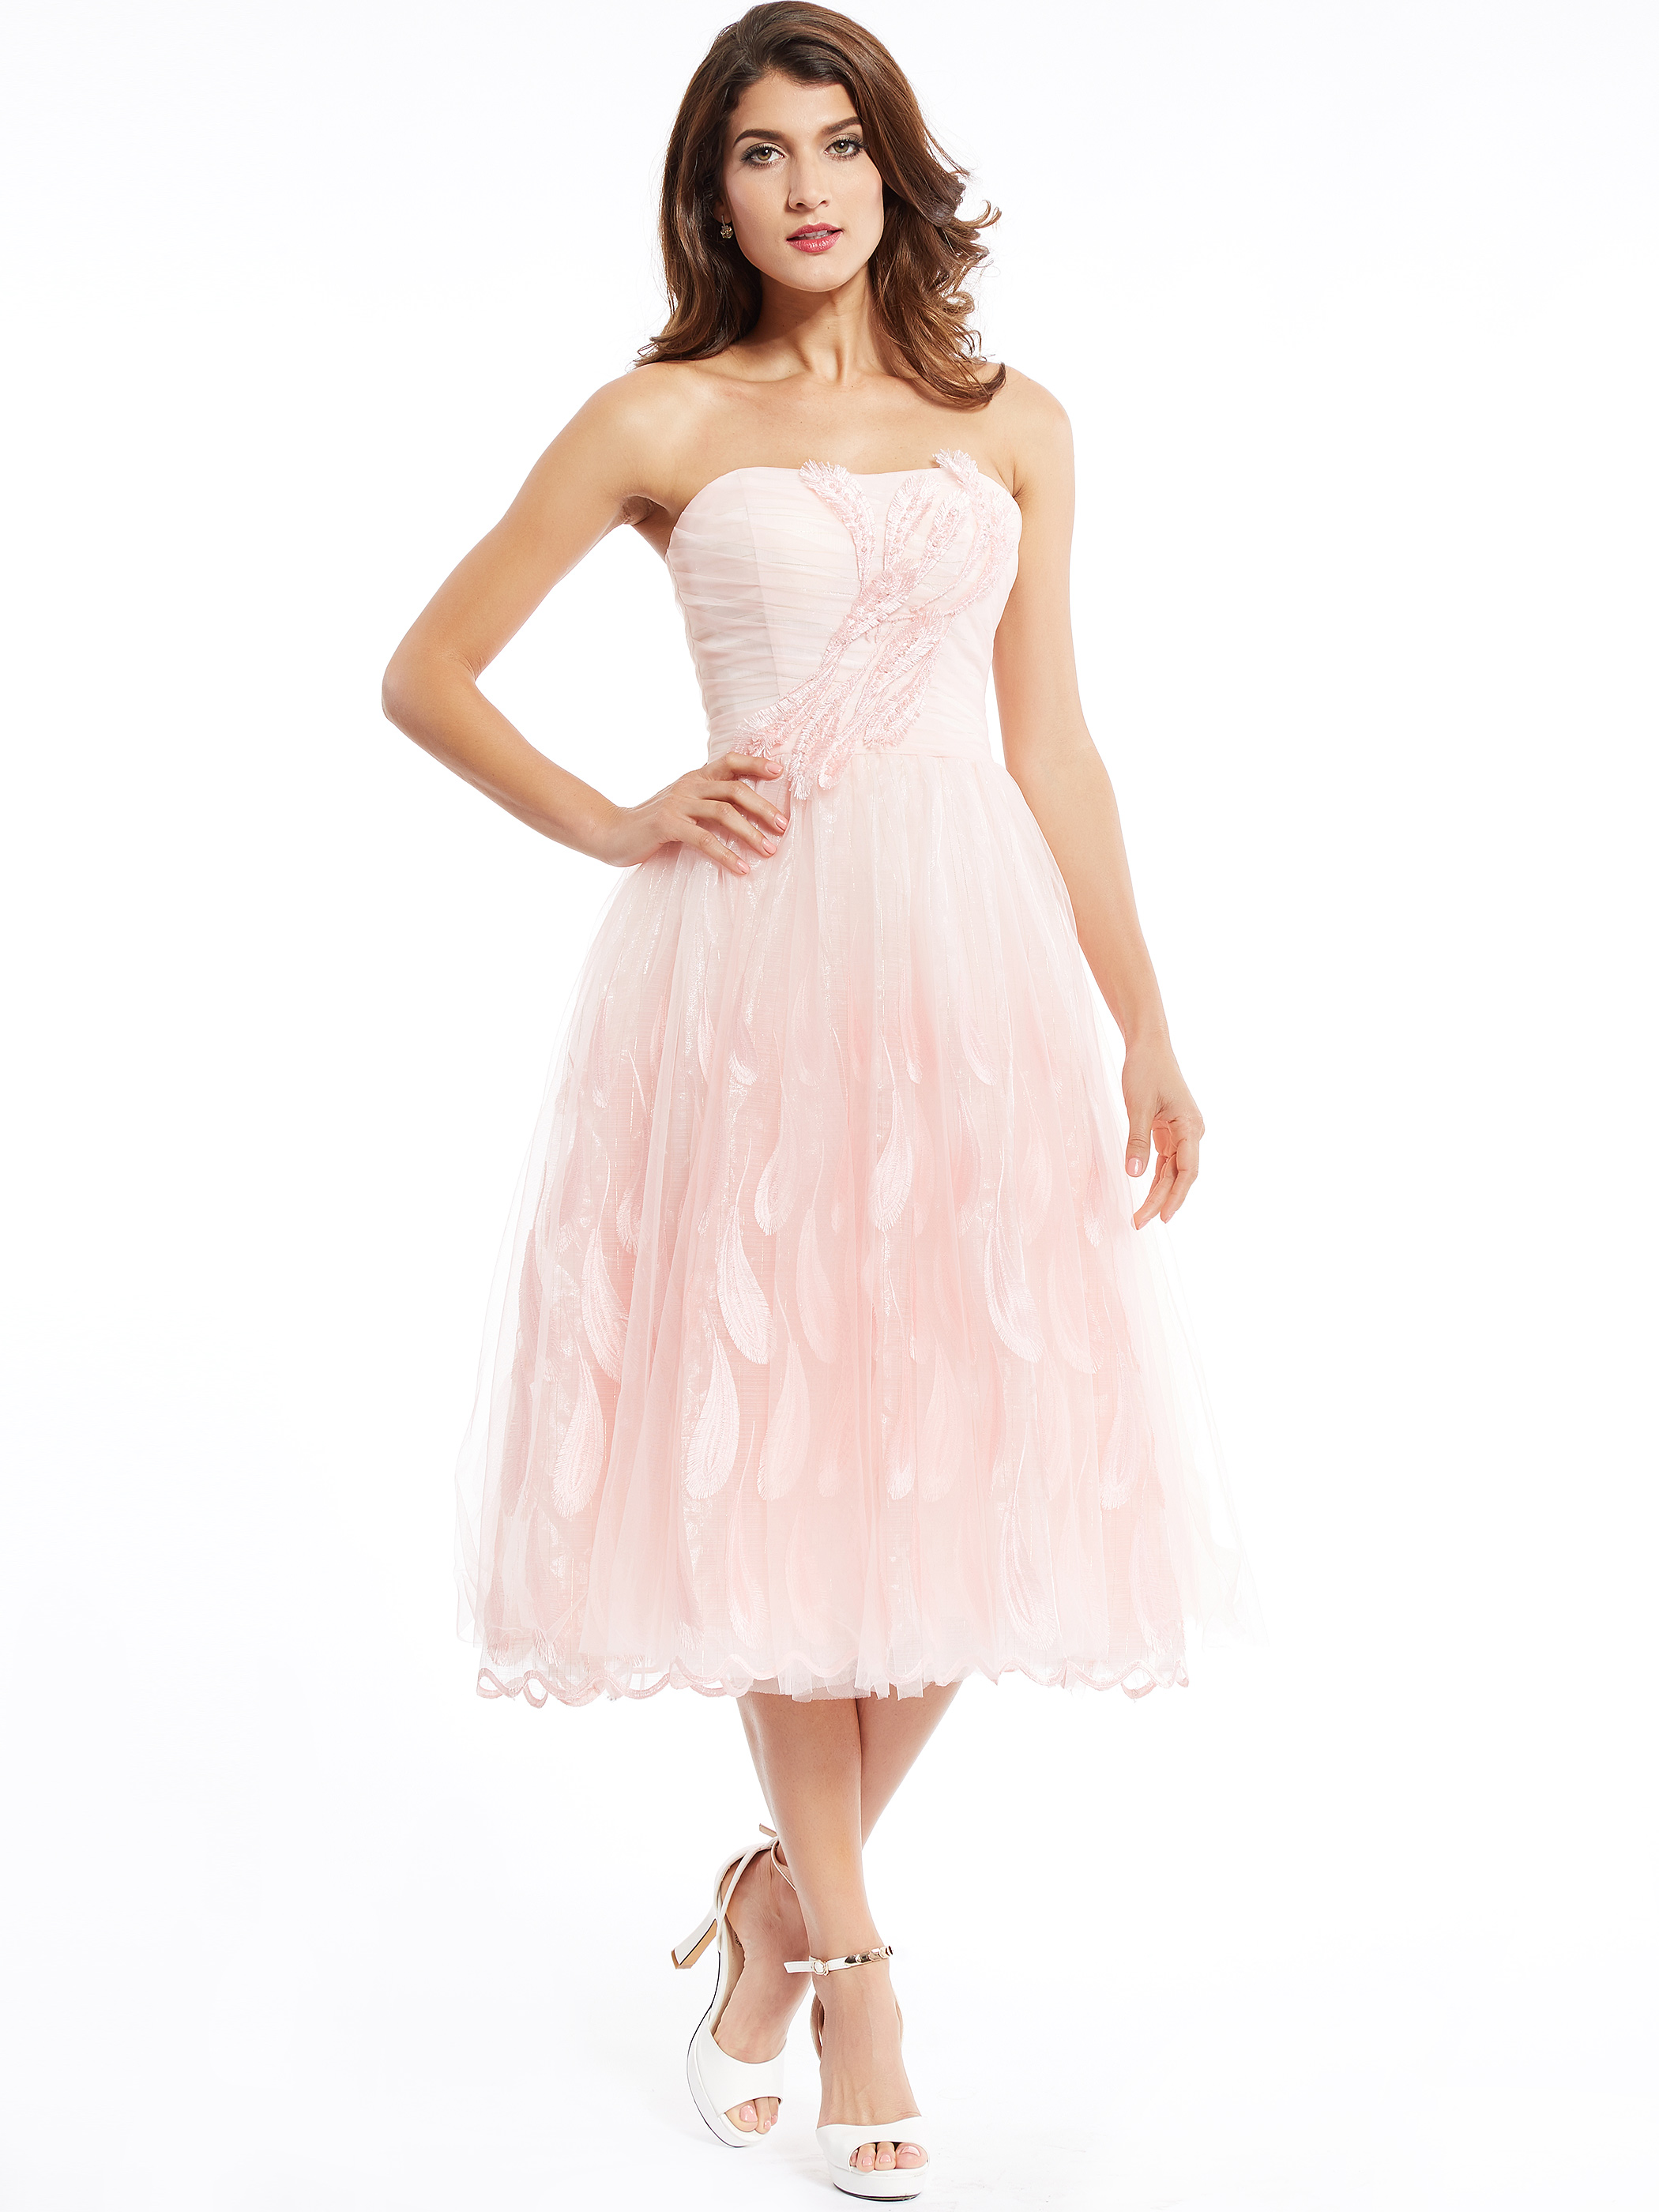 Dressv Strapless Cocktail Dress Pearl Pink Tea Length Beaded A Line Dress Cheap Sweet 16 Appliques Homecoming Cocktail Dresses